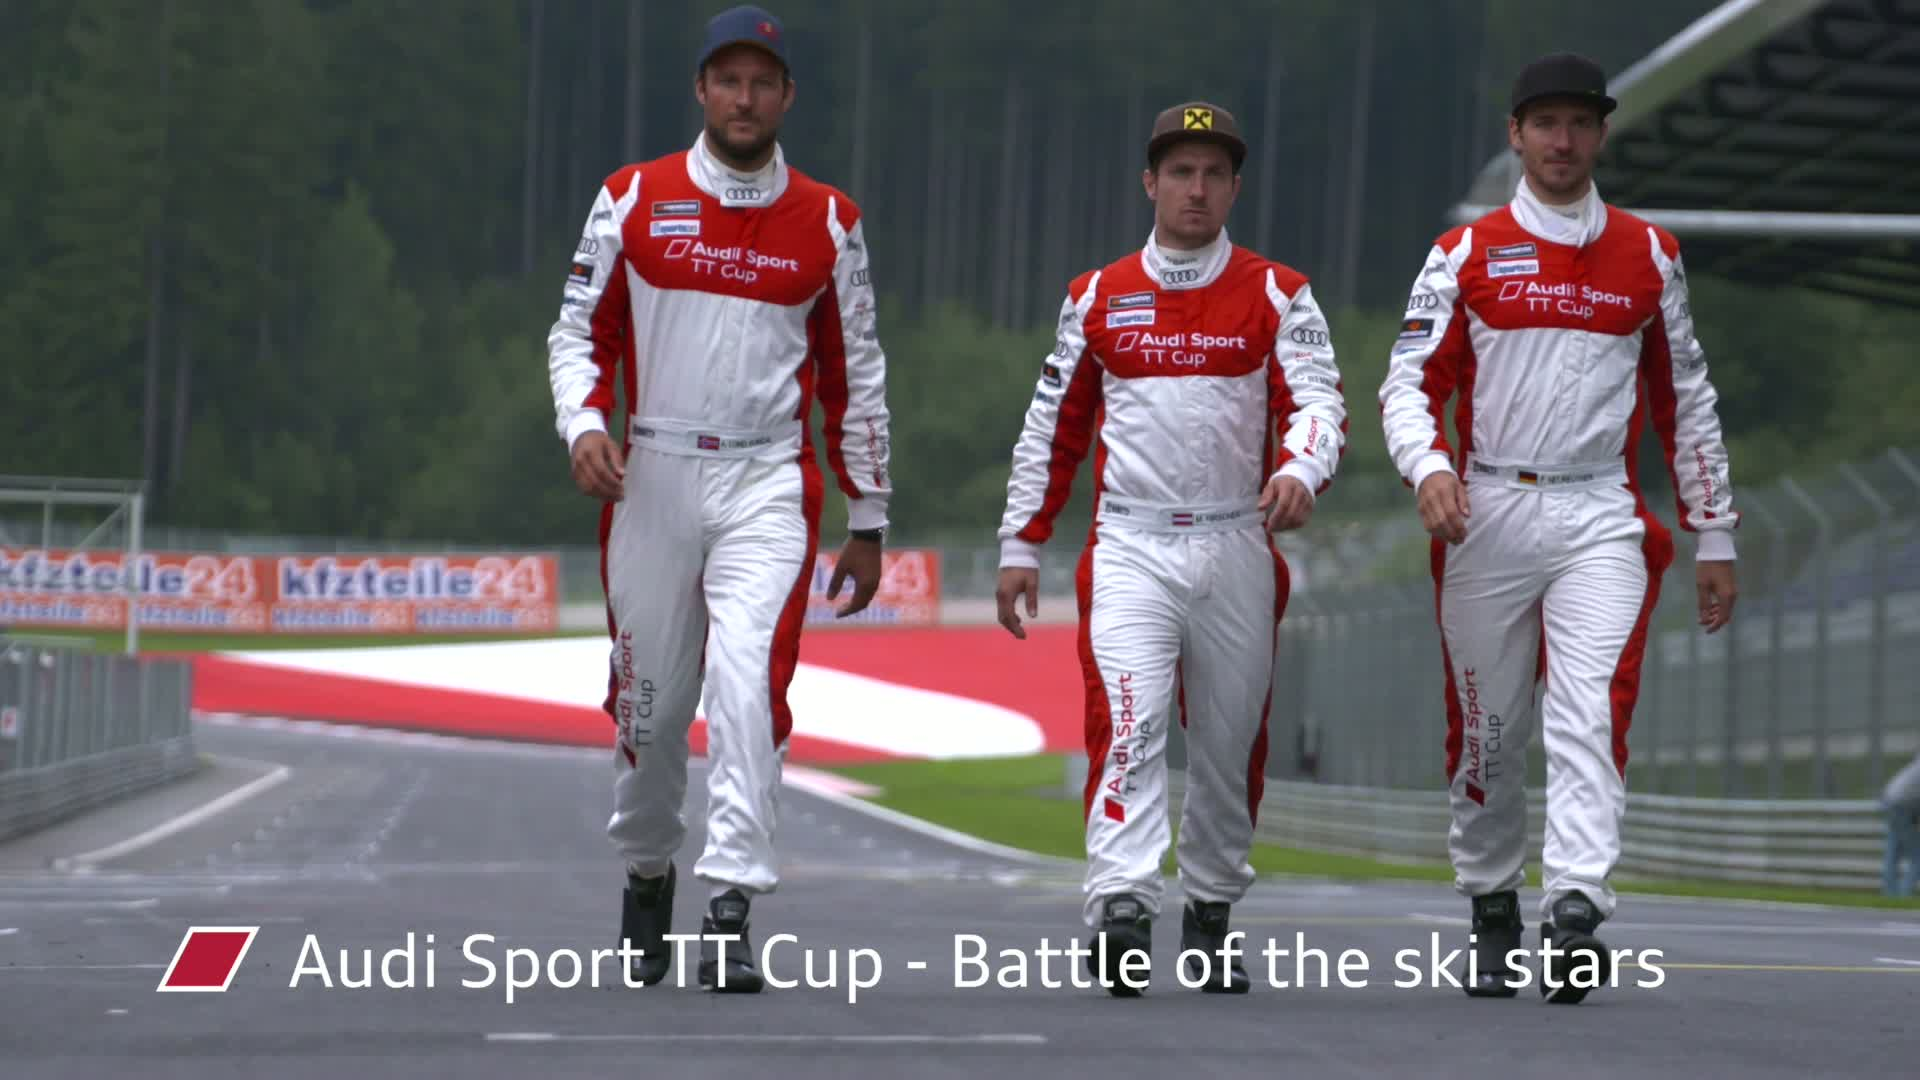 60 Seconds of Audi Sport 67/2015 - Audi Sport TT Cup, Battle of the ski stars